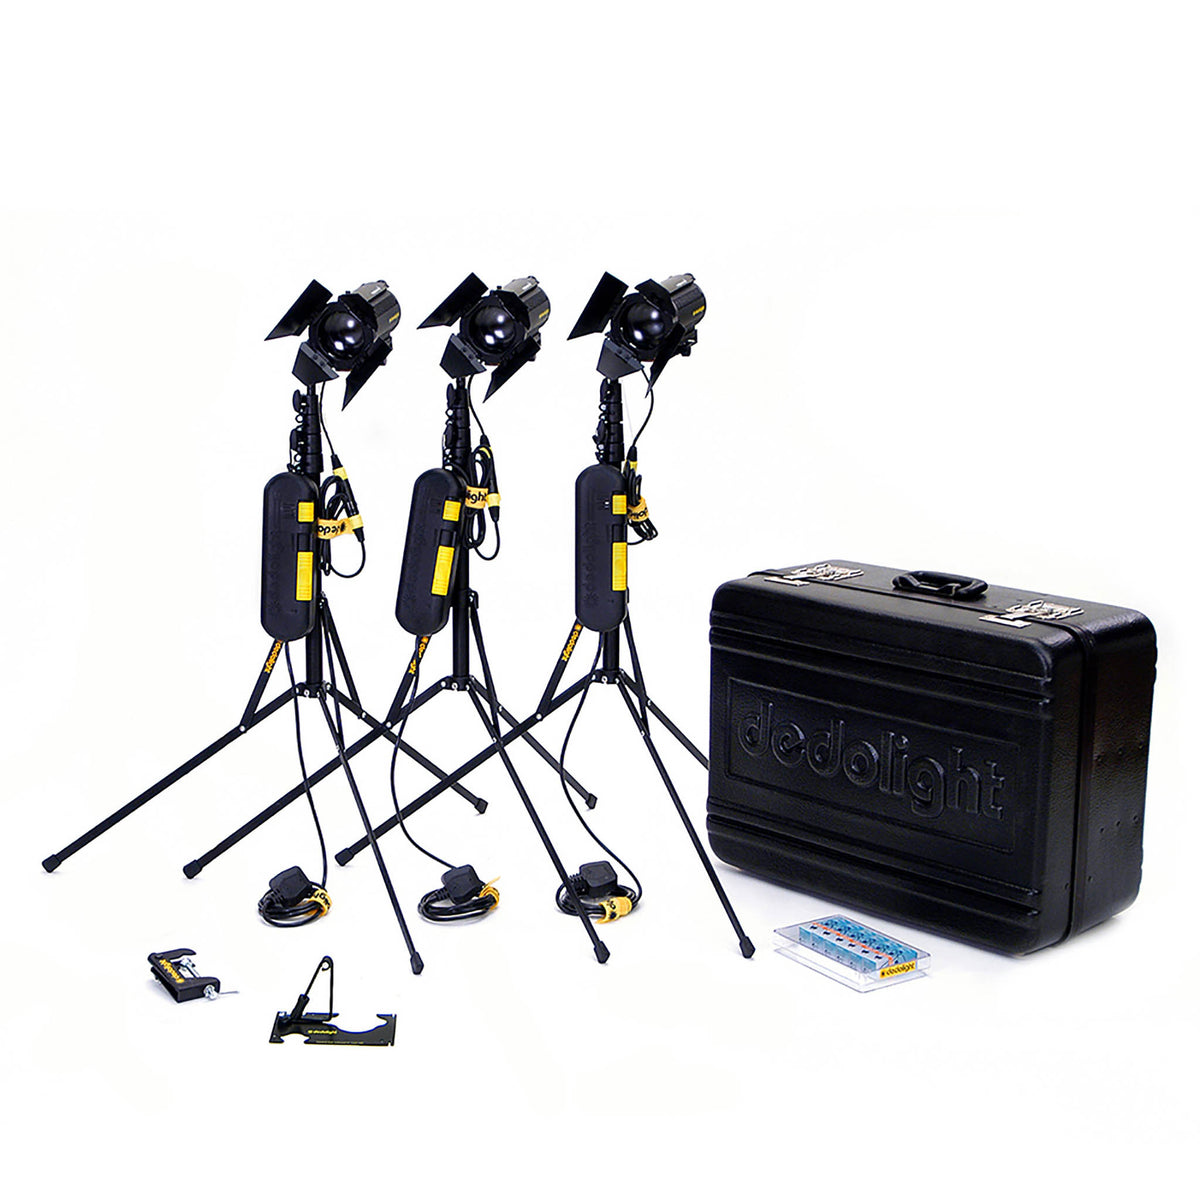 Dedo DLH4 150w tungsten light 3 kit